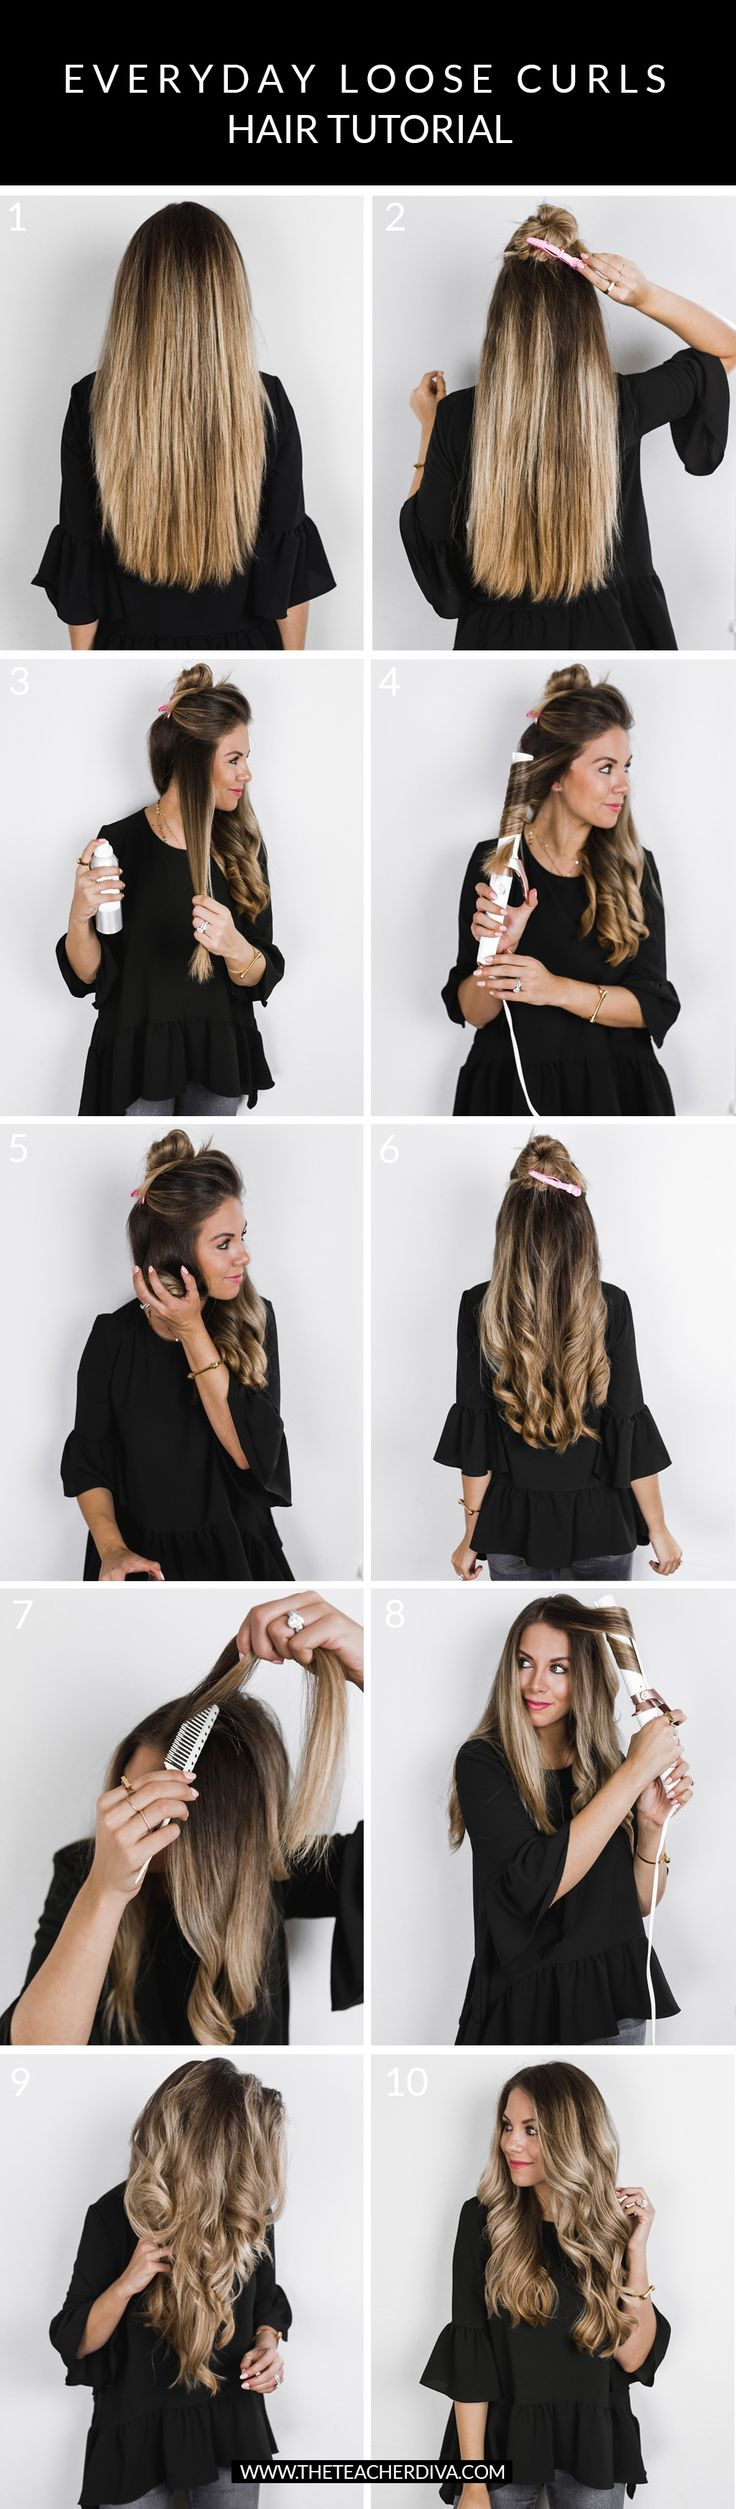 How I Get My Everyday Loose Curls | The Teacher Diva: a Dallas Fashion Blog featuring Beauty & Lifestyle